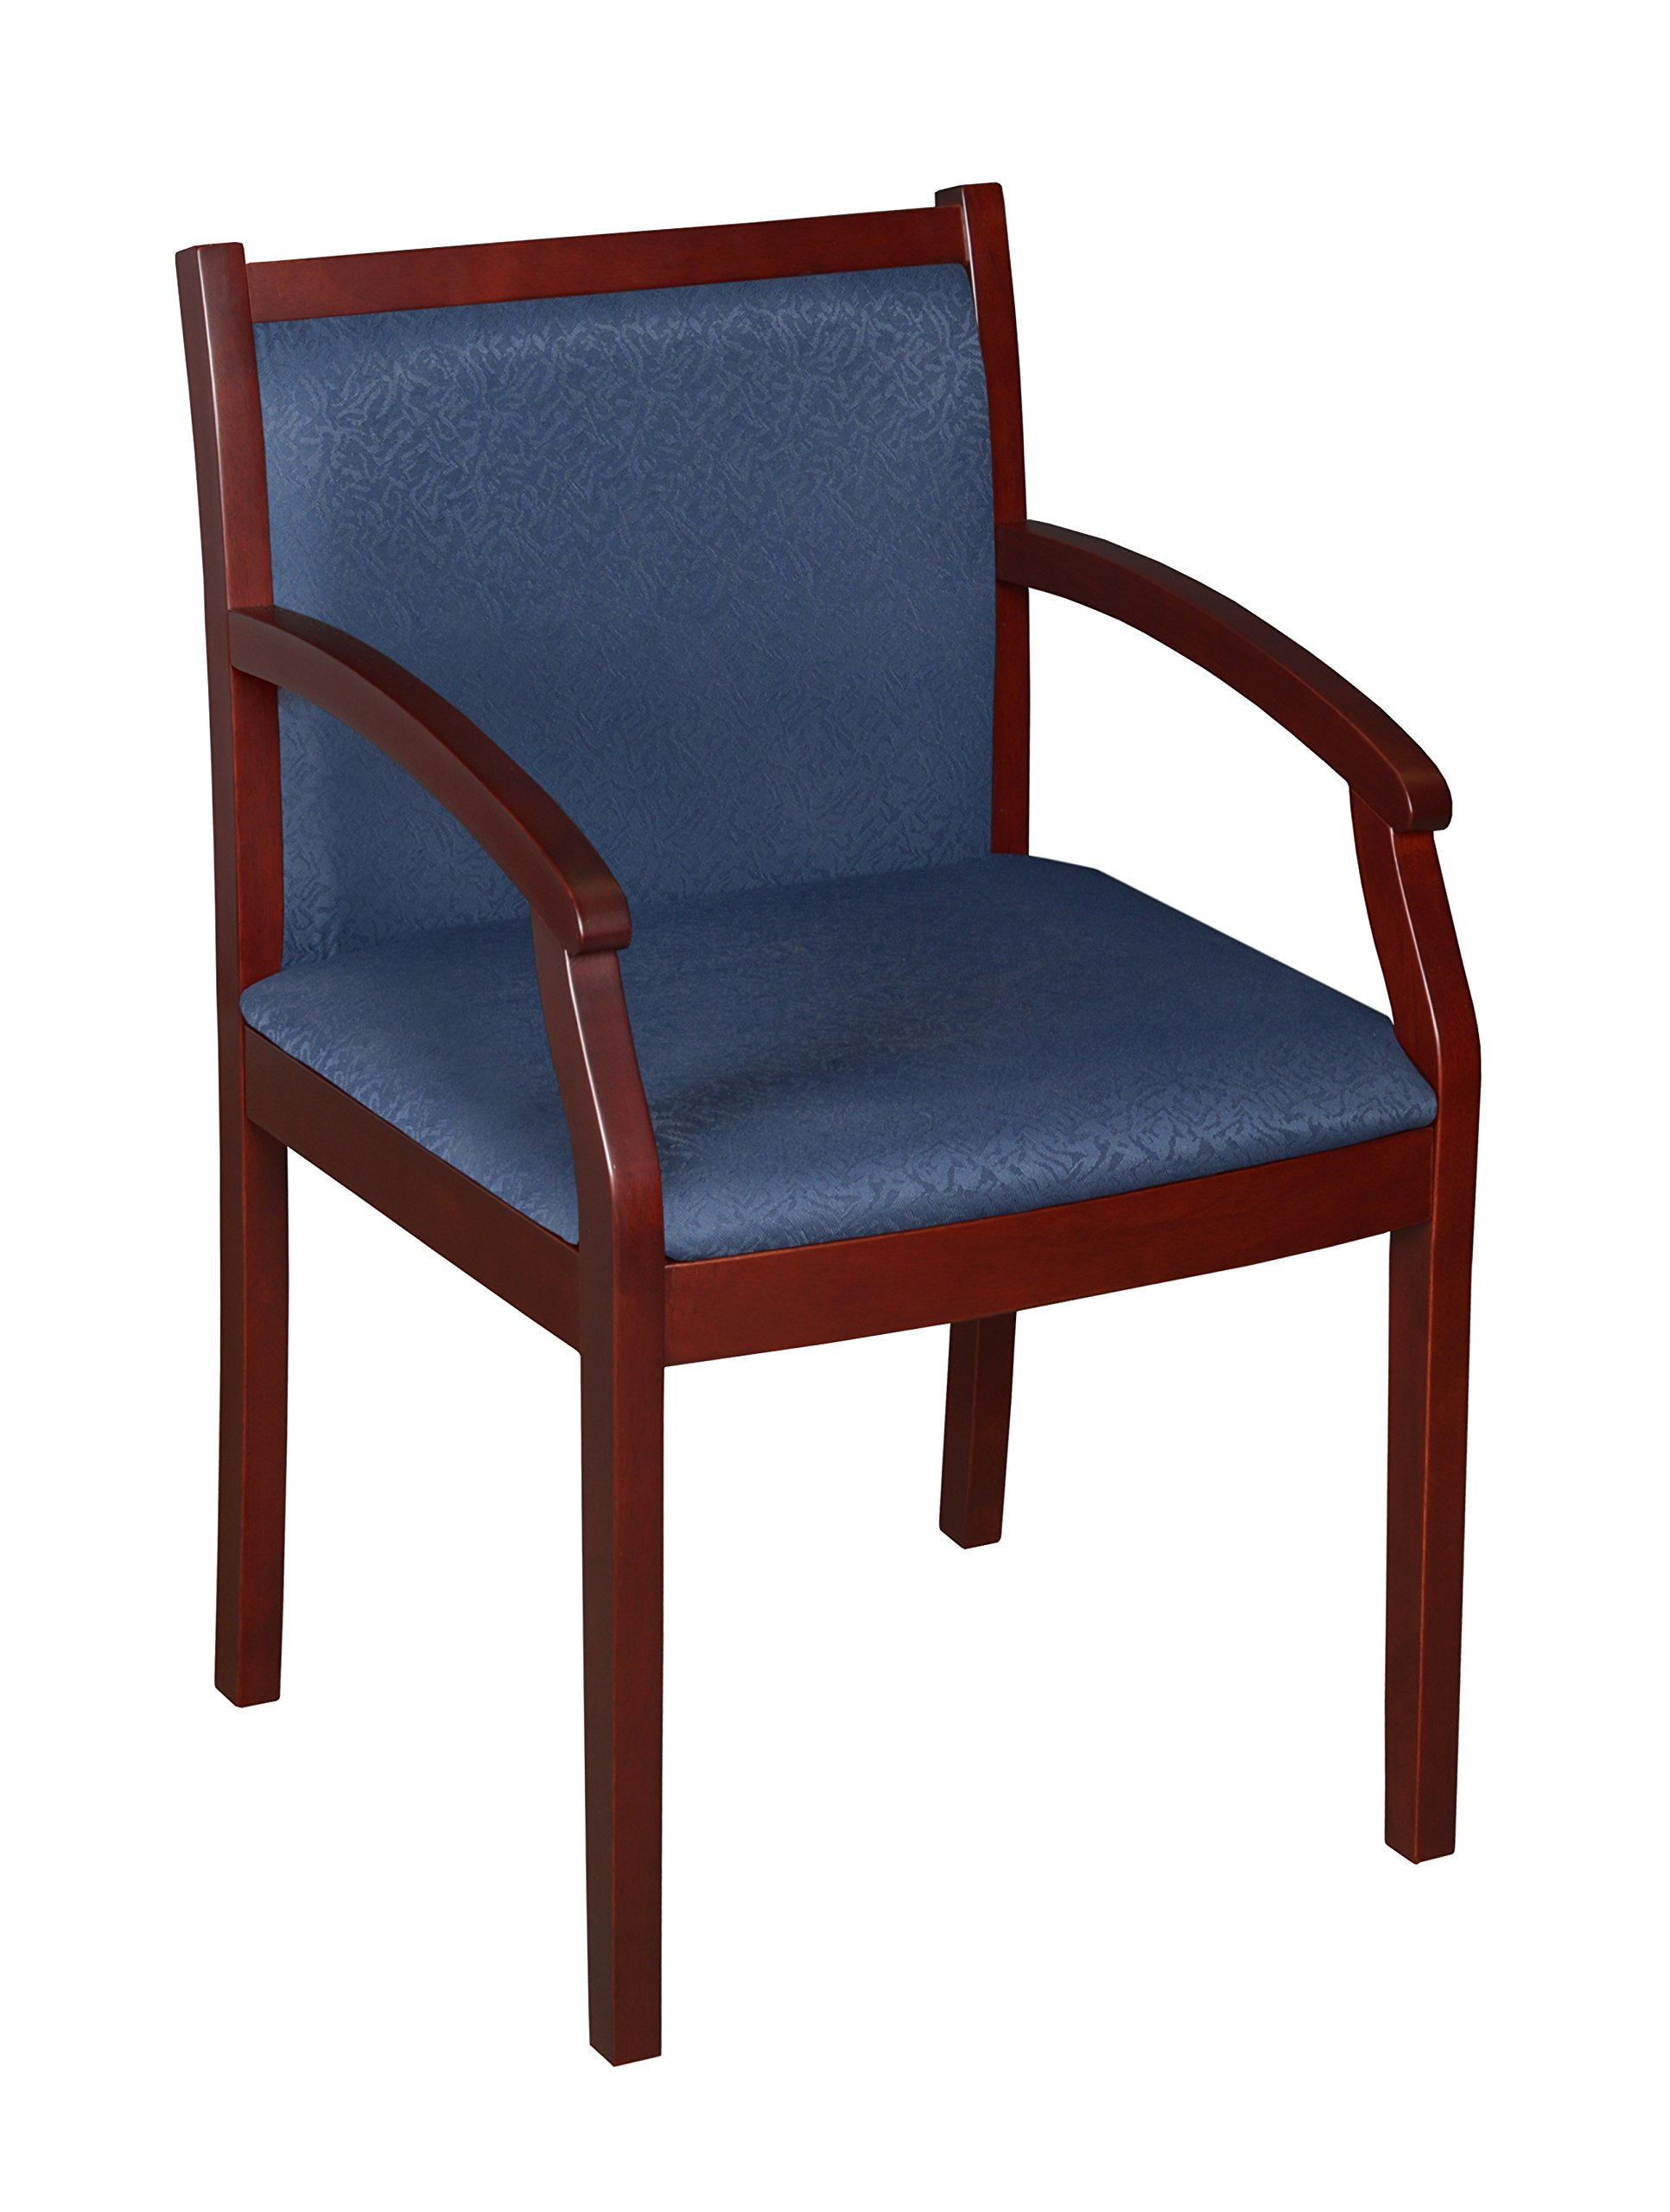 Regency Seating Regent Guest Chair with a Mahogany Wood Frame and Blue Fabric